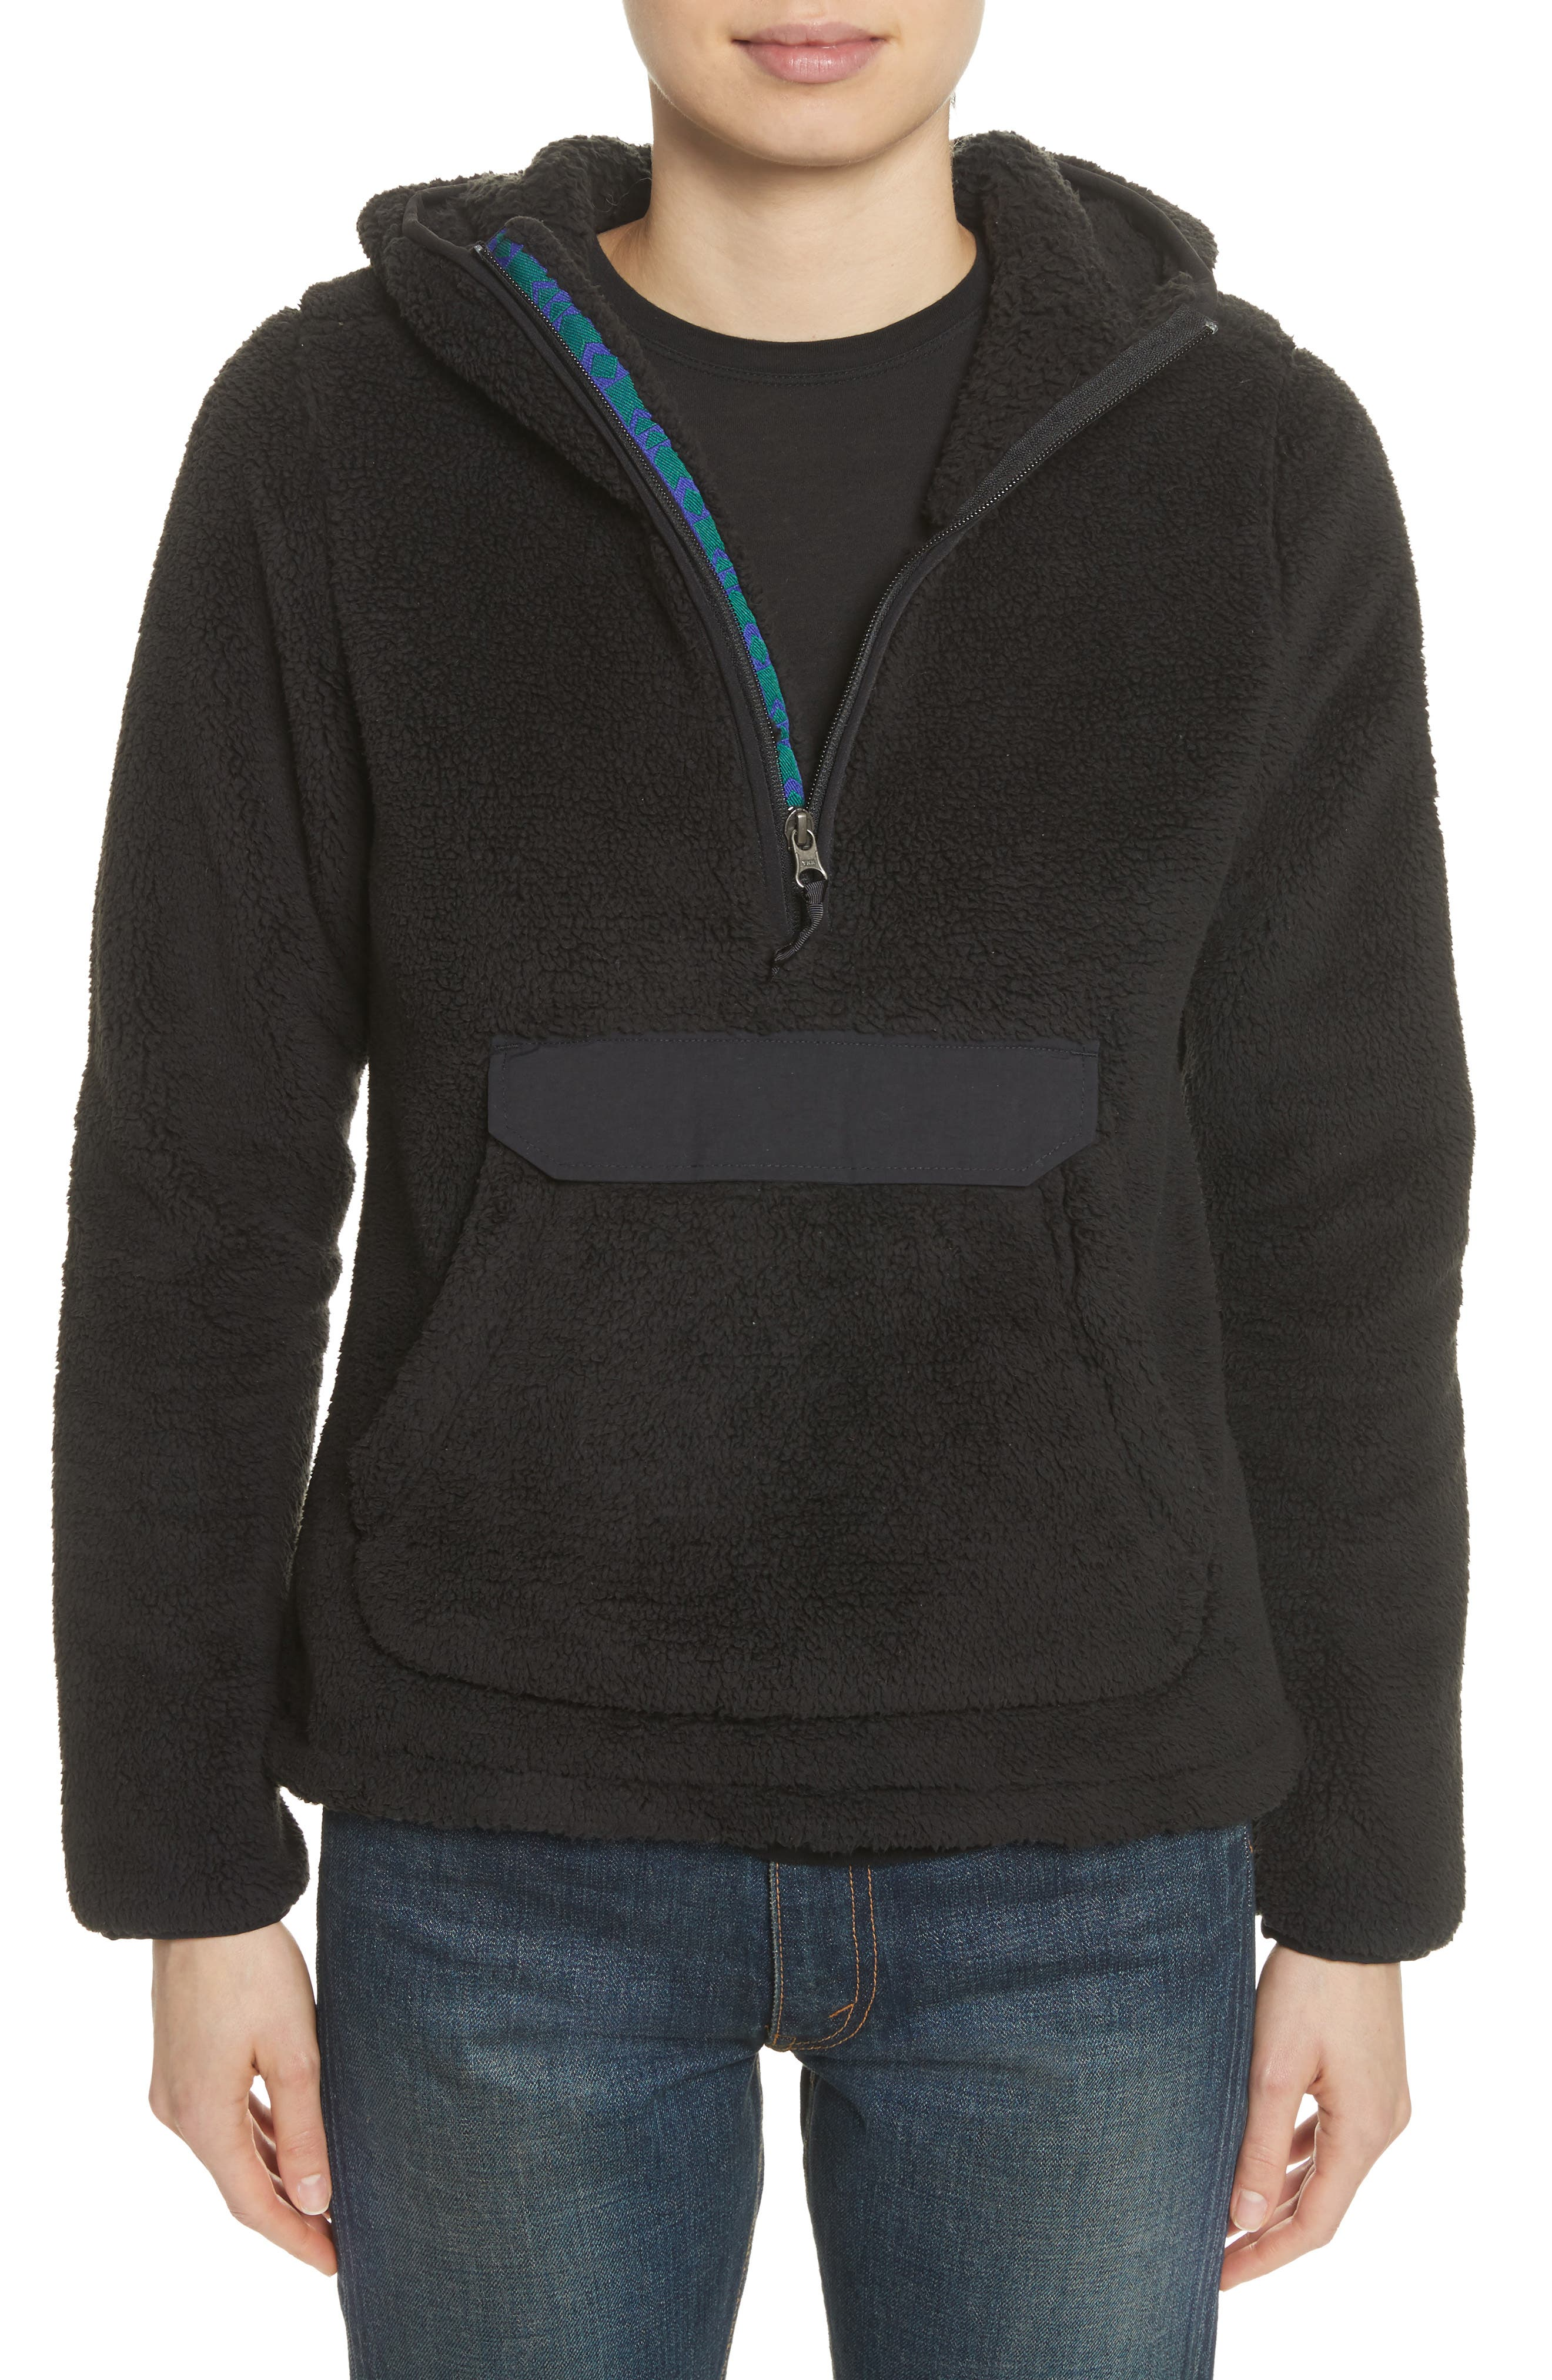 Campshire High Pile Fleece Pullover Hoodie,                             Main thumbnail 1, color,                             001